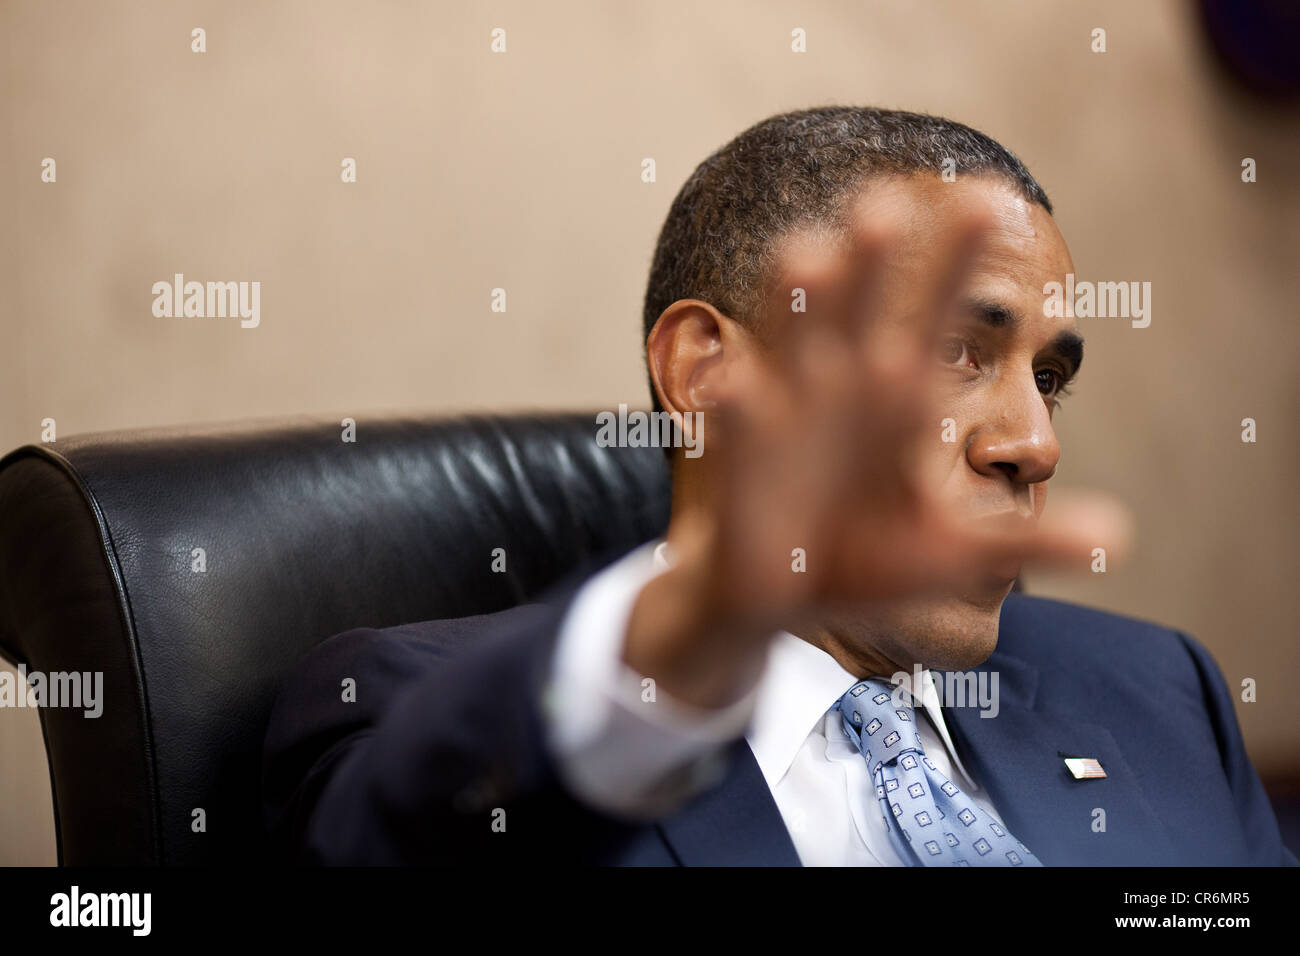 US President Barack Obama holds a meeting in the Situation Room of the White House May 31, 2012 in Washington, DC. - Stock Image